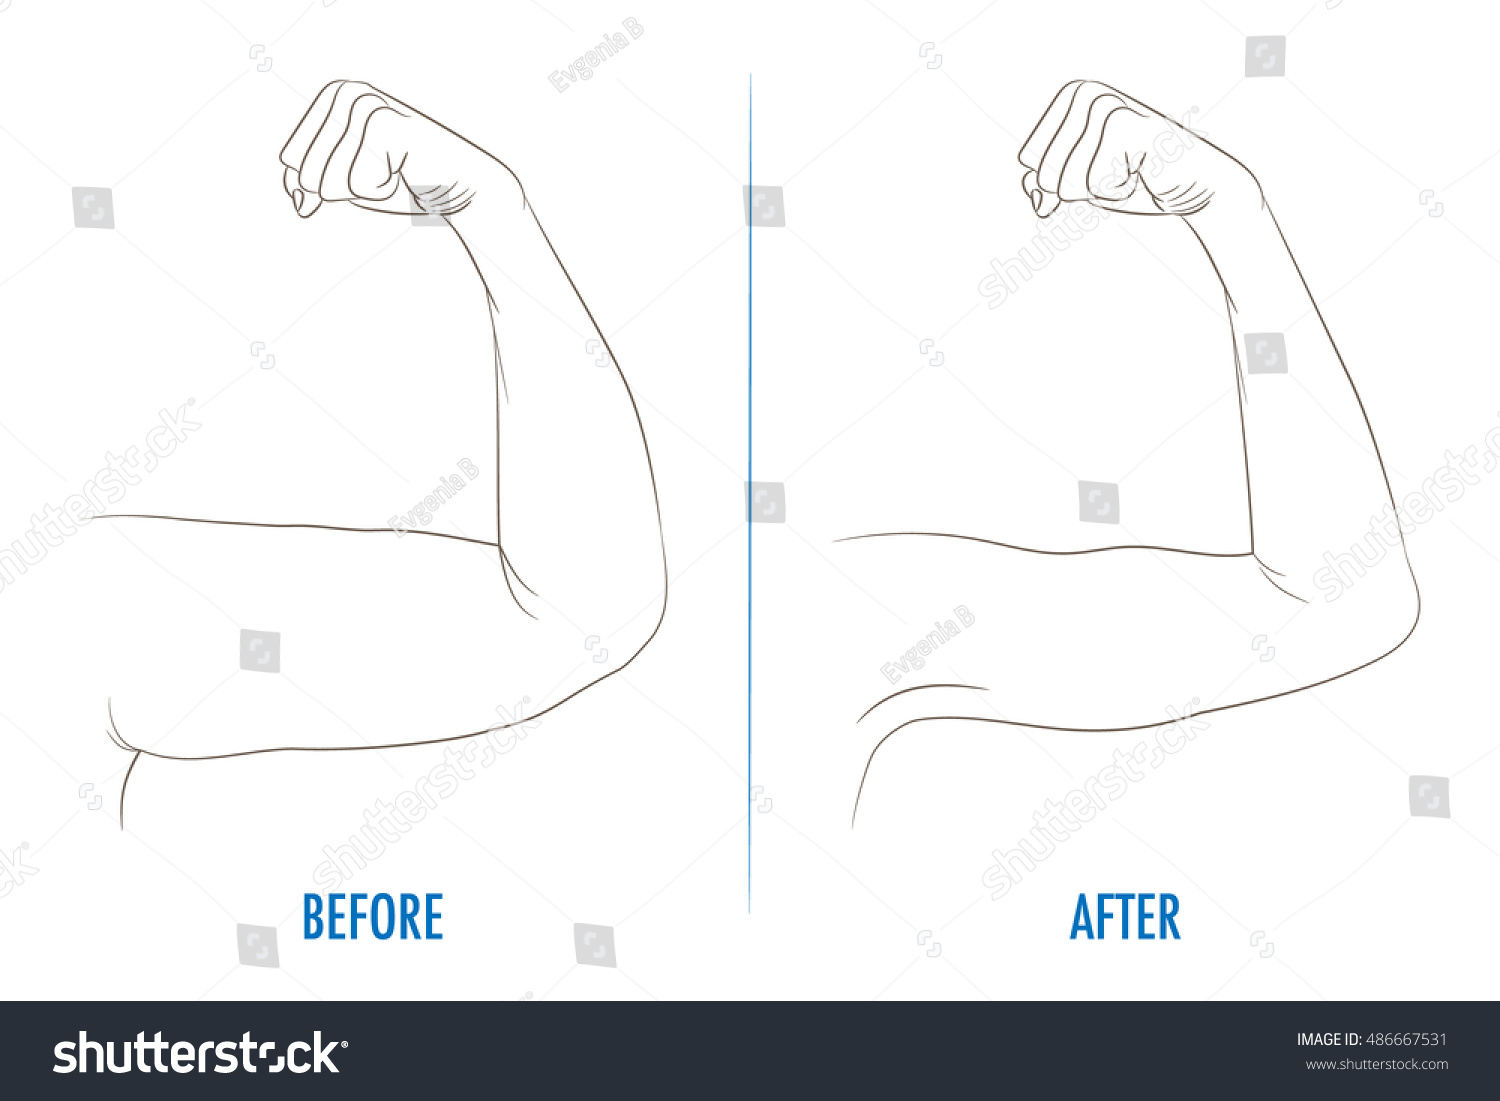 hight resolution of female biceps before and after sport arms showing progress after fitness bent arm with